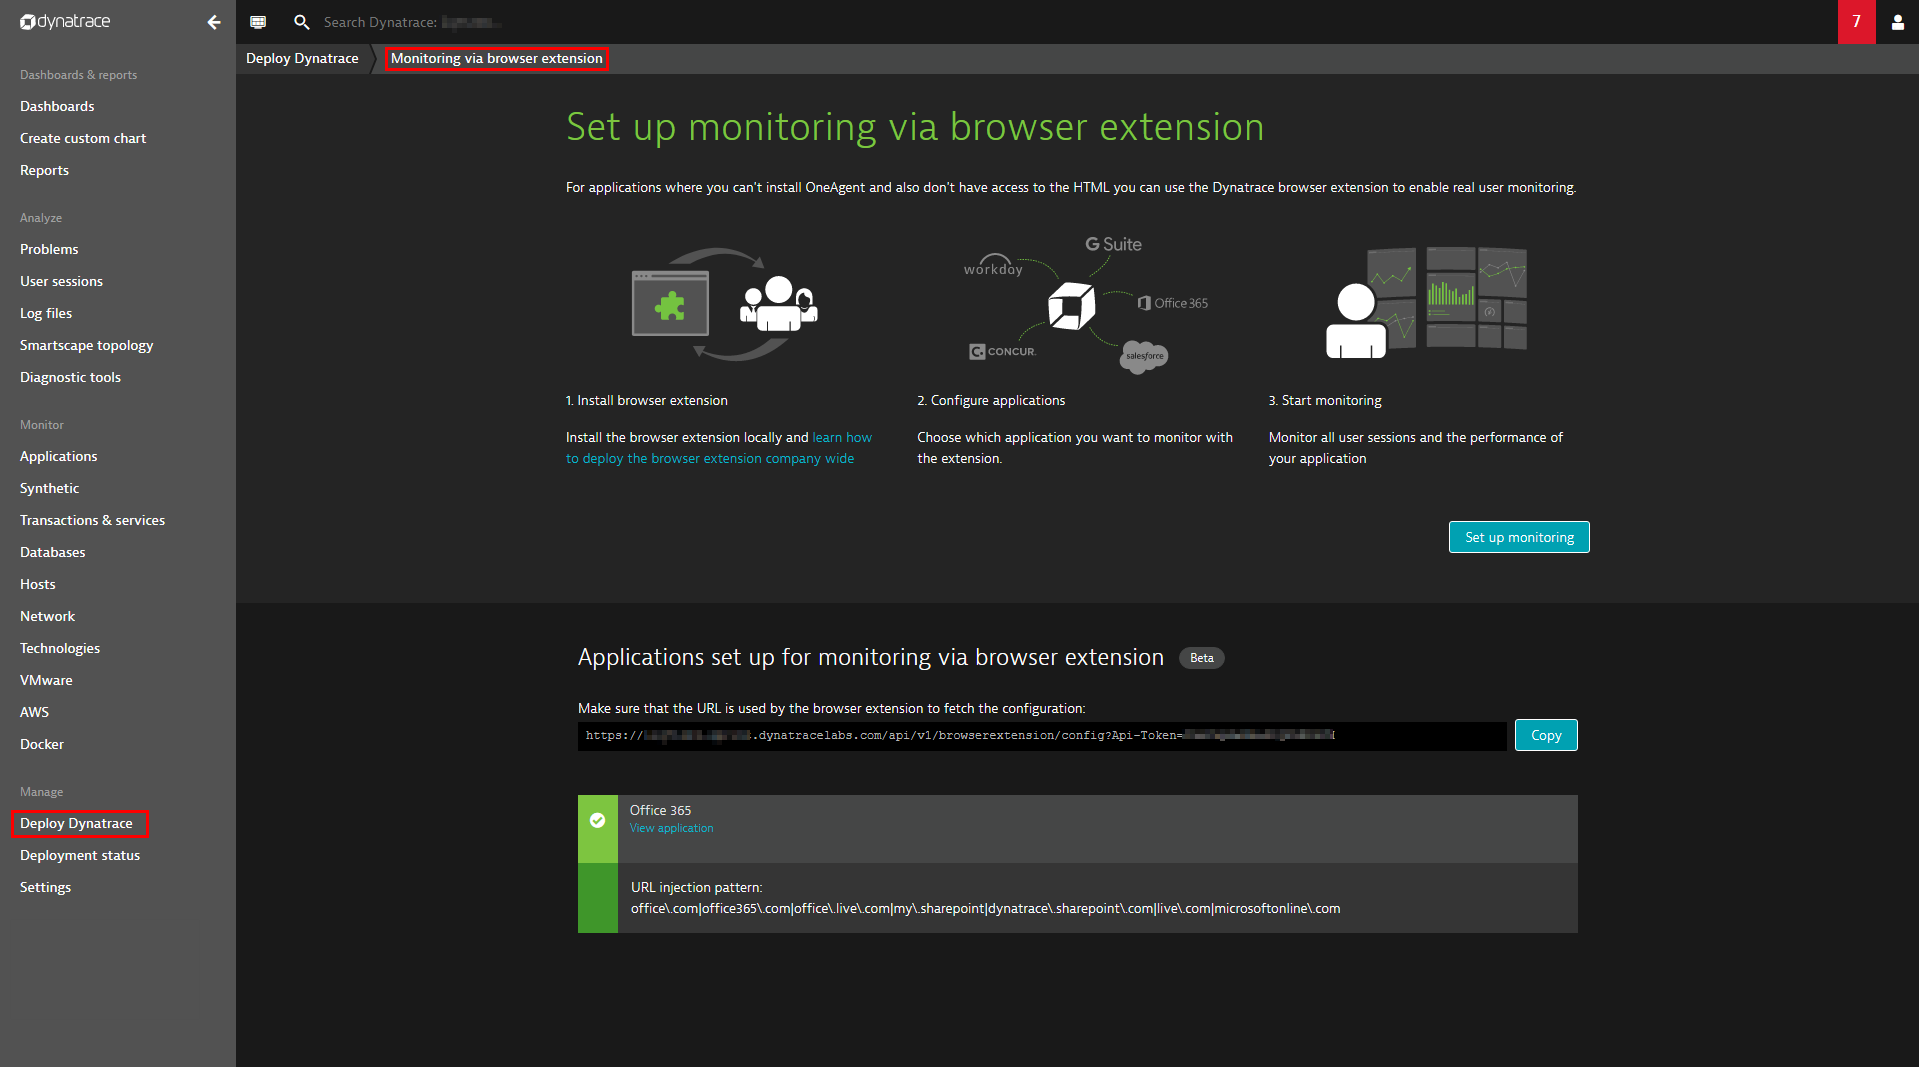 Real User Monitoring (RUM) browser extension for 3rd-party SaaS